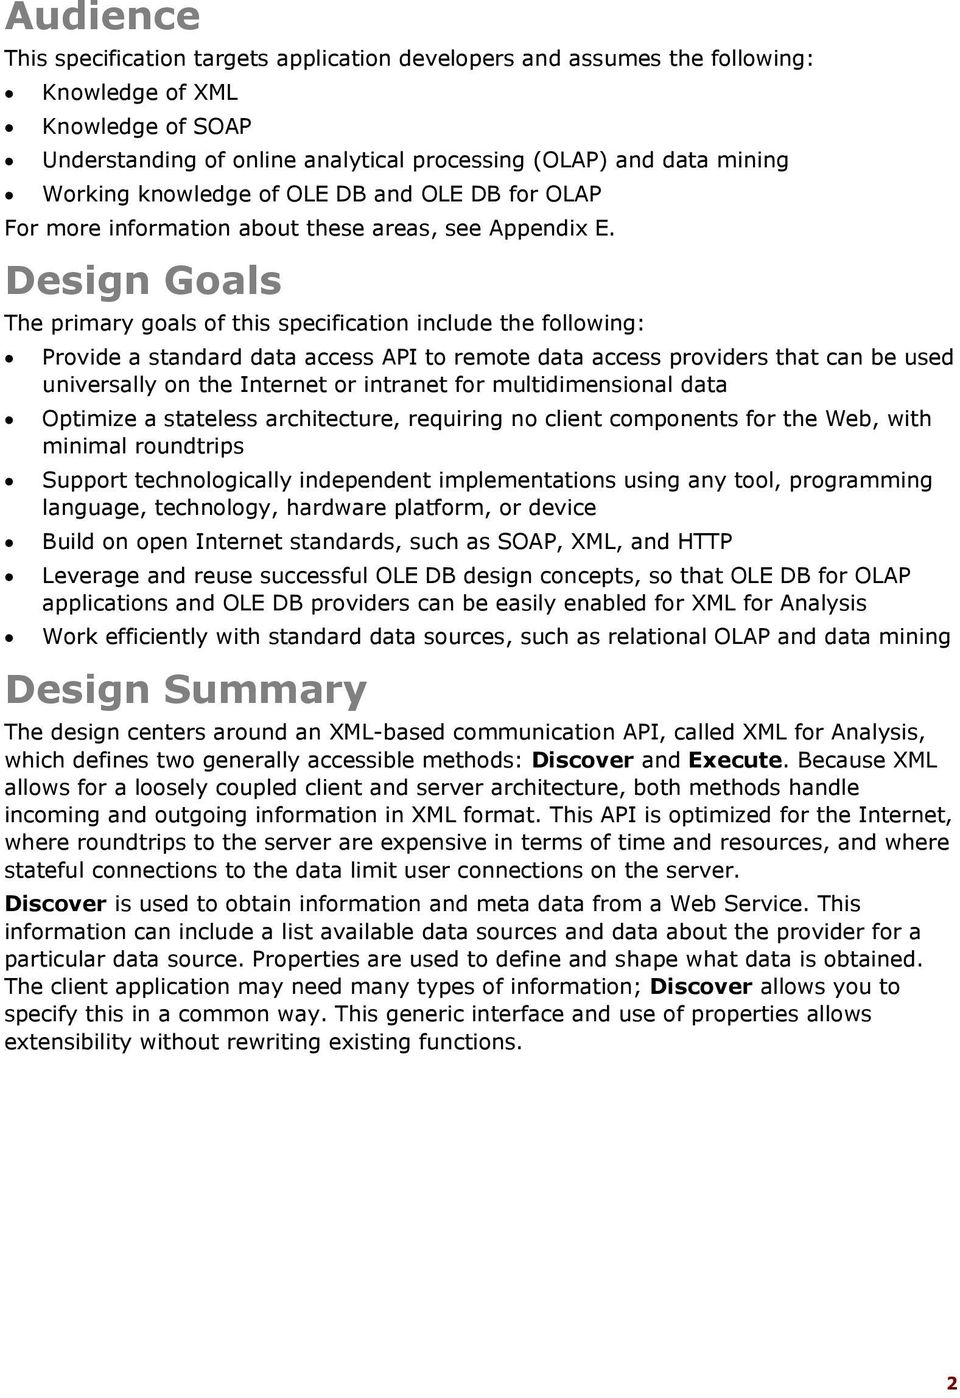 Design Goals The primary goals of this specification include the following: Provide a standard data access API to remote data access providers that can be used universally on the Internet or intranet